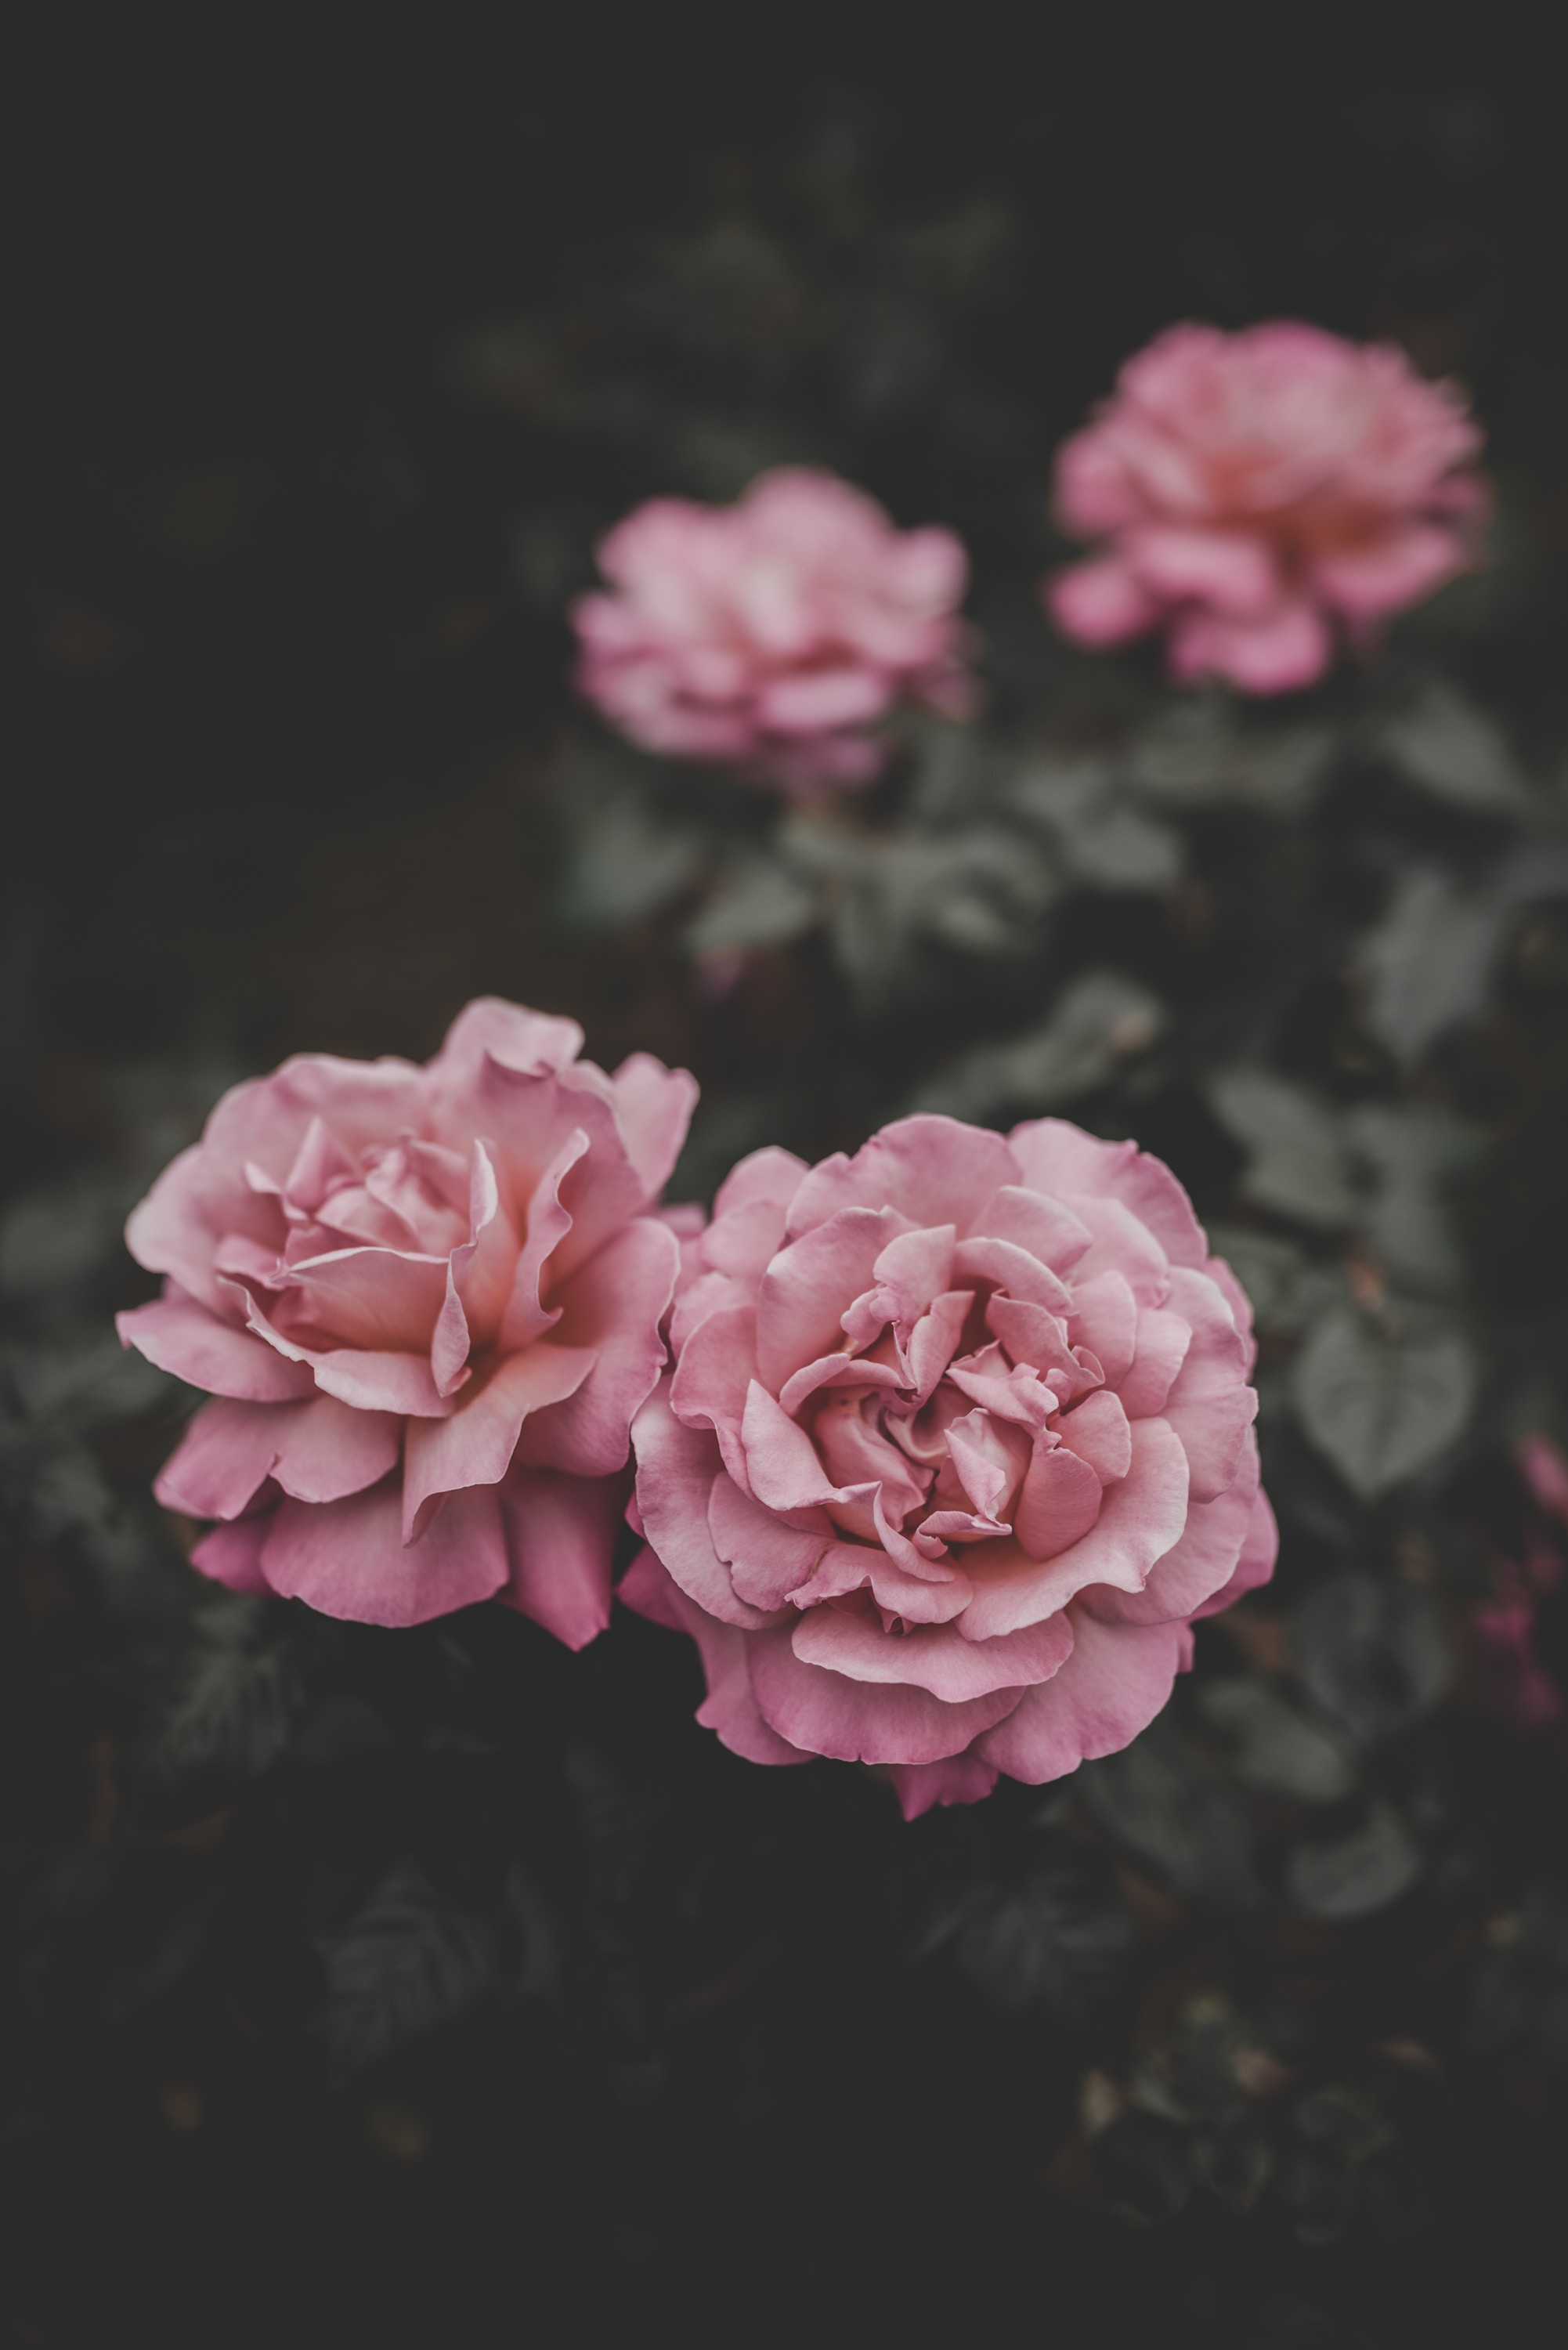 136619 download wallpaper Flowers, Buds, Pink, Blur, Smooth, Roses screensavers and pictures for free